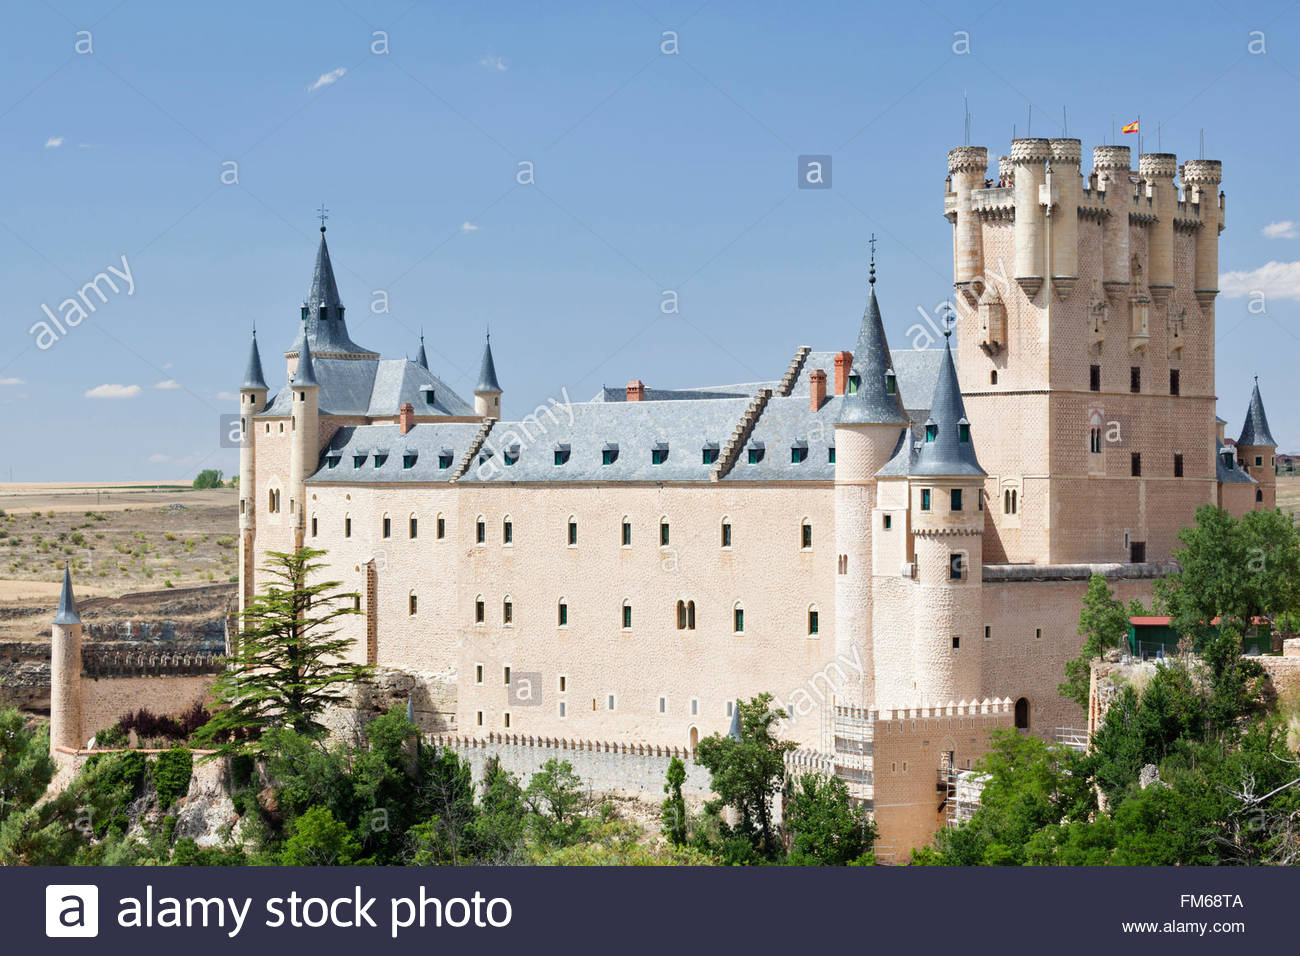 An exterior view of a large castle like building called Alcazar of Segovia,  seen from